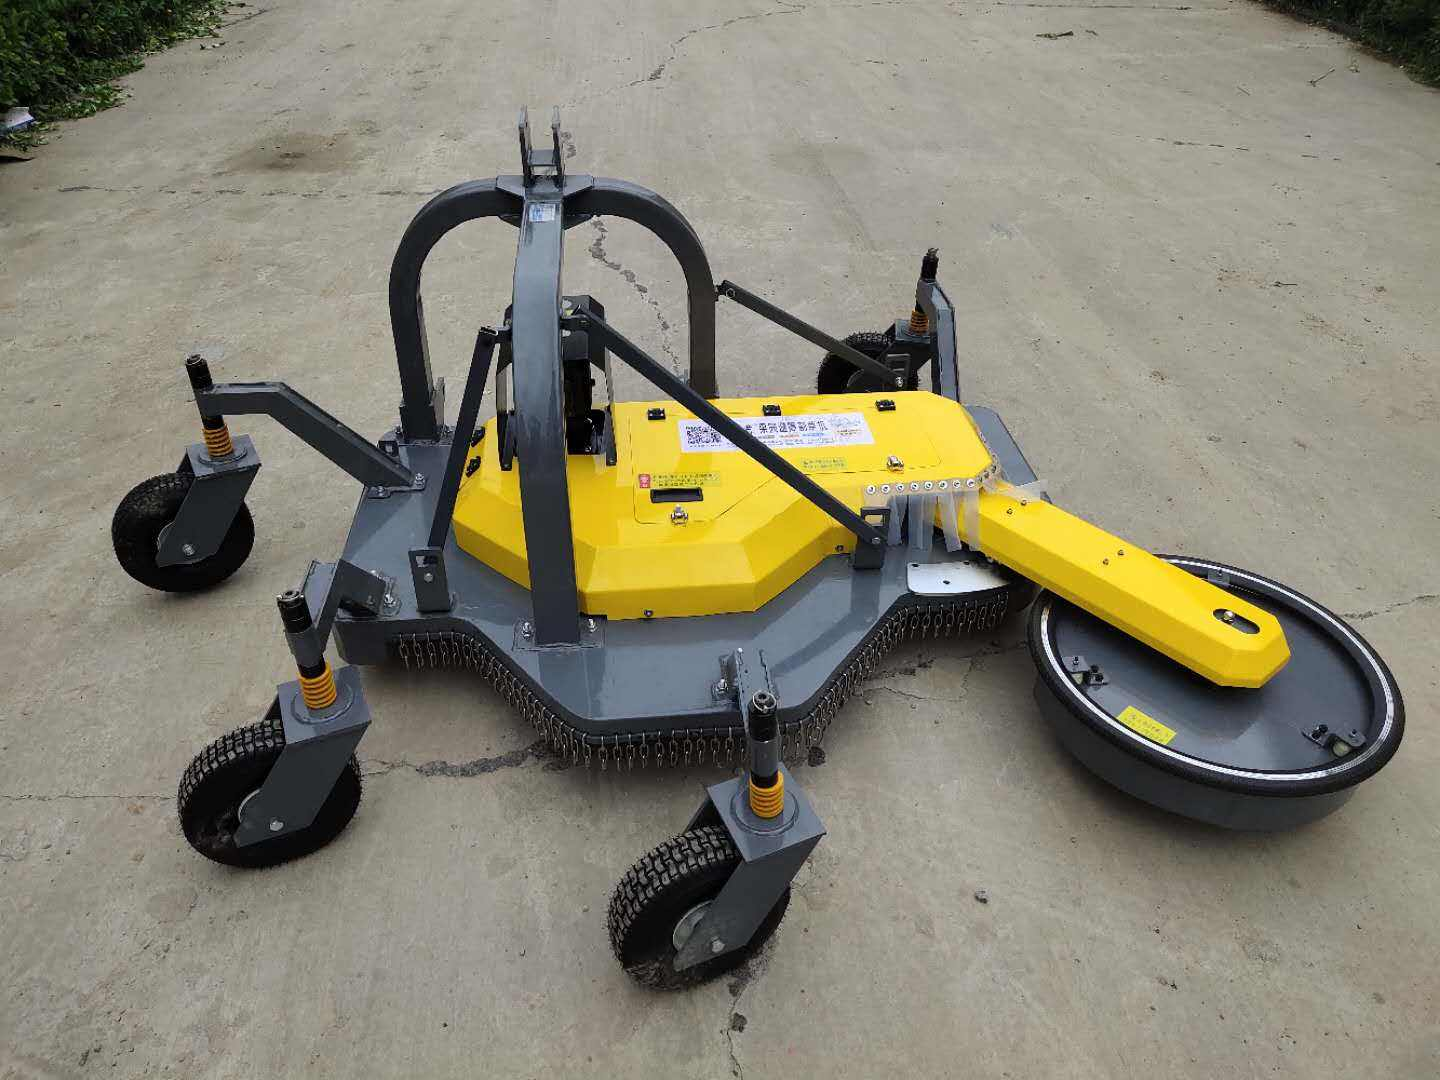 Path Breaker swing arm mower S5 - vineyard and orchard mowers with swing arms for 4-5 meter trees distance